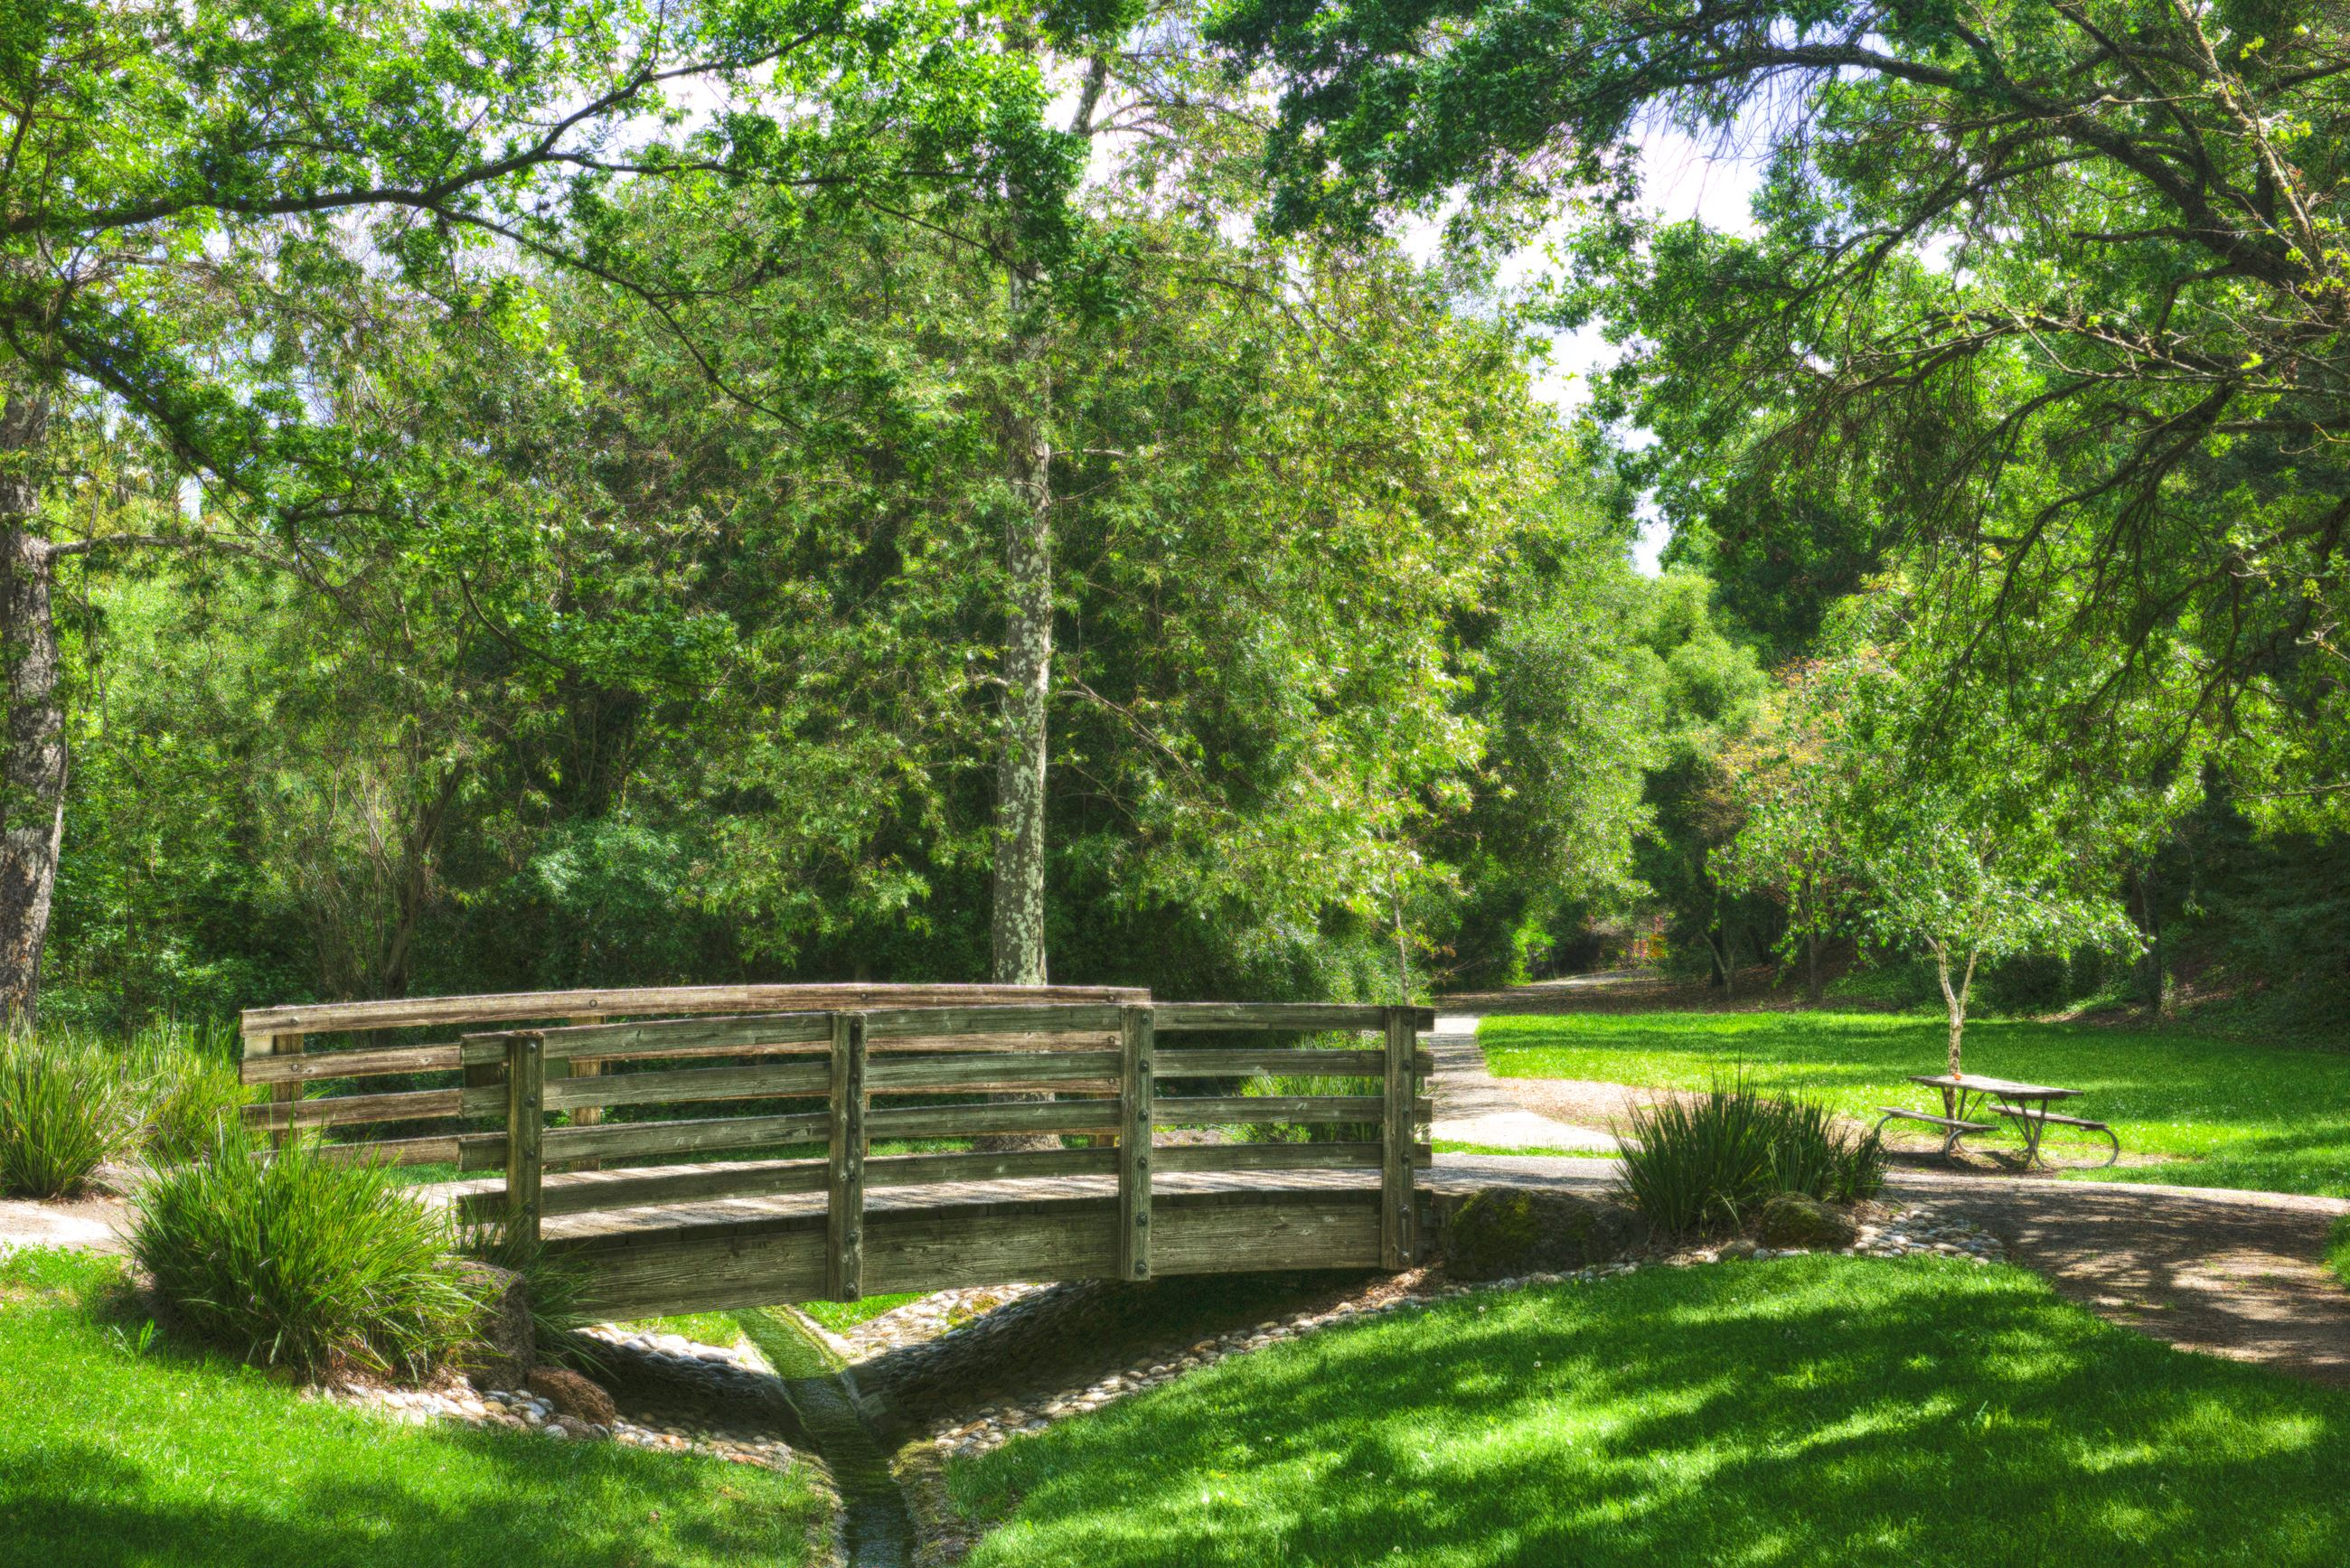 Small arched bridge in lush green neighborhood park